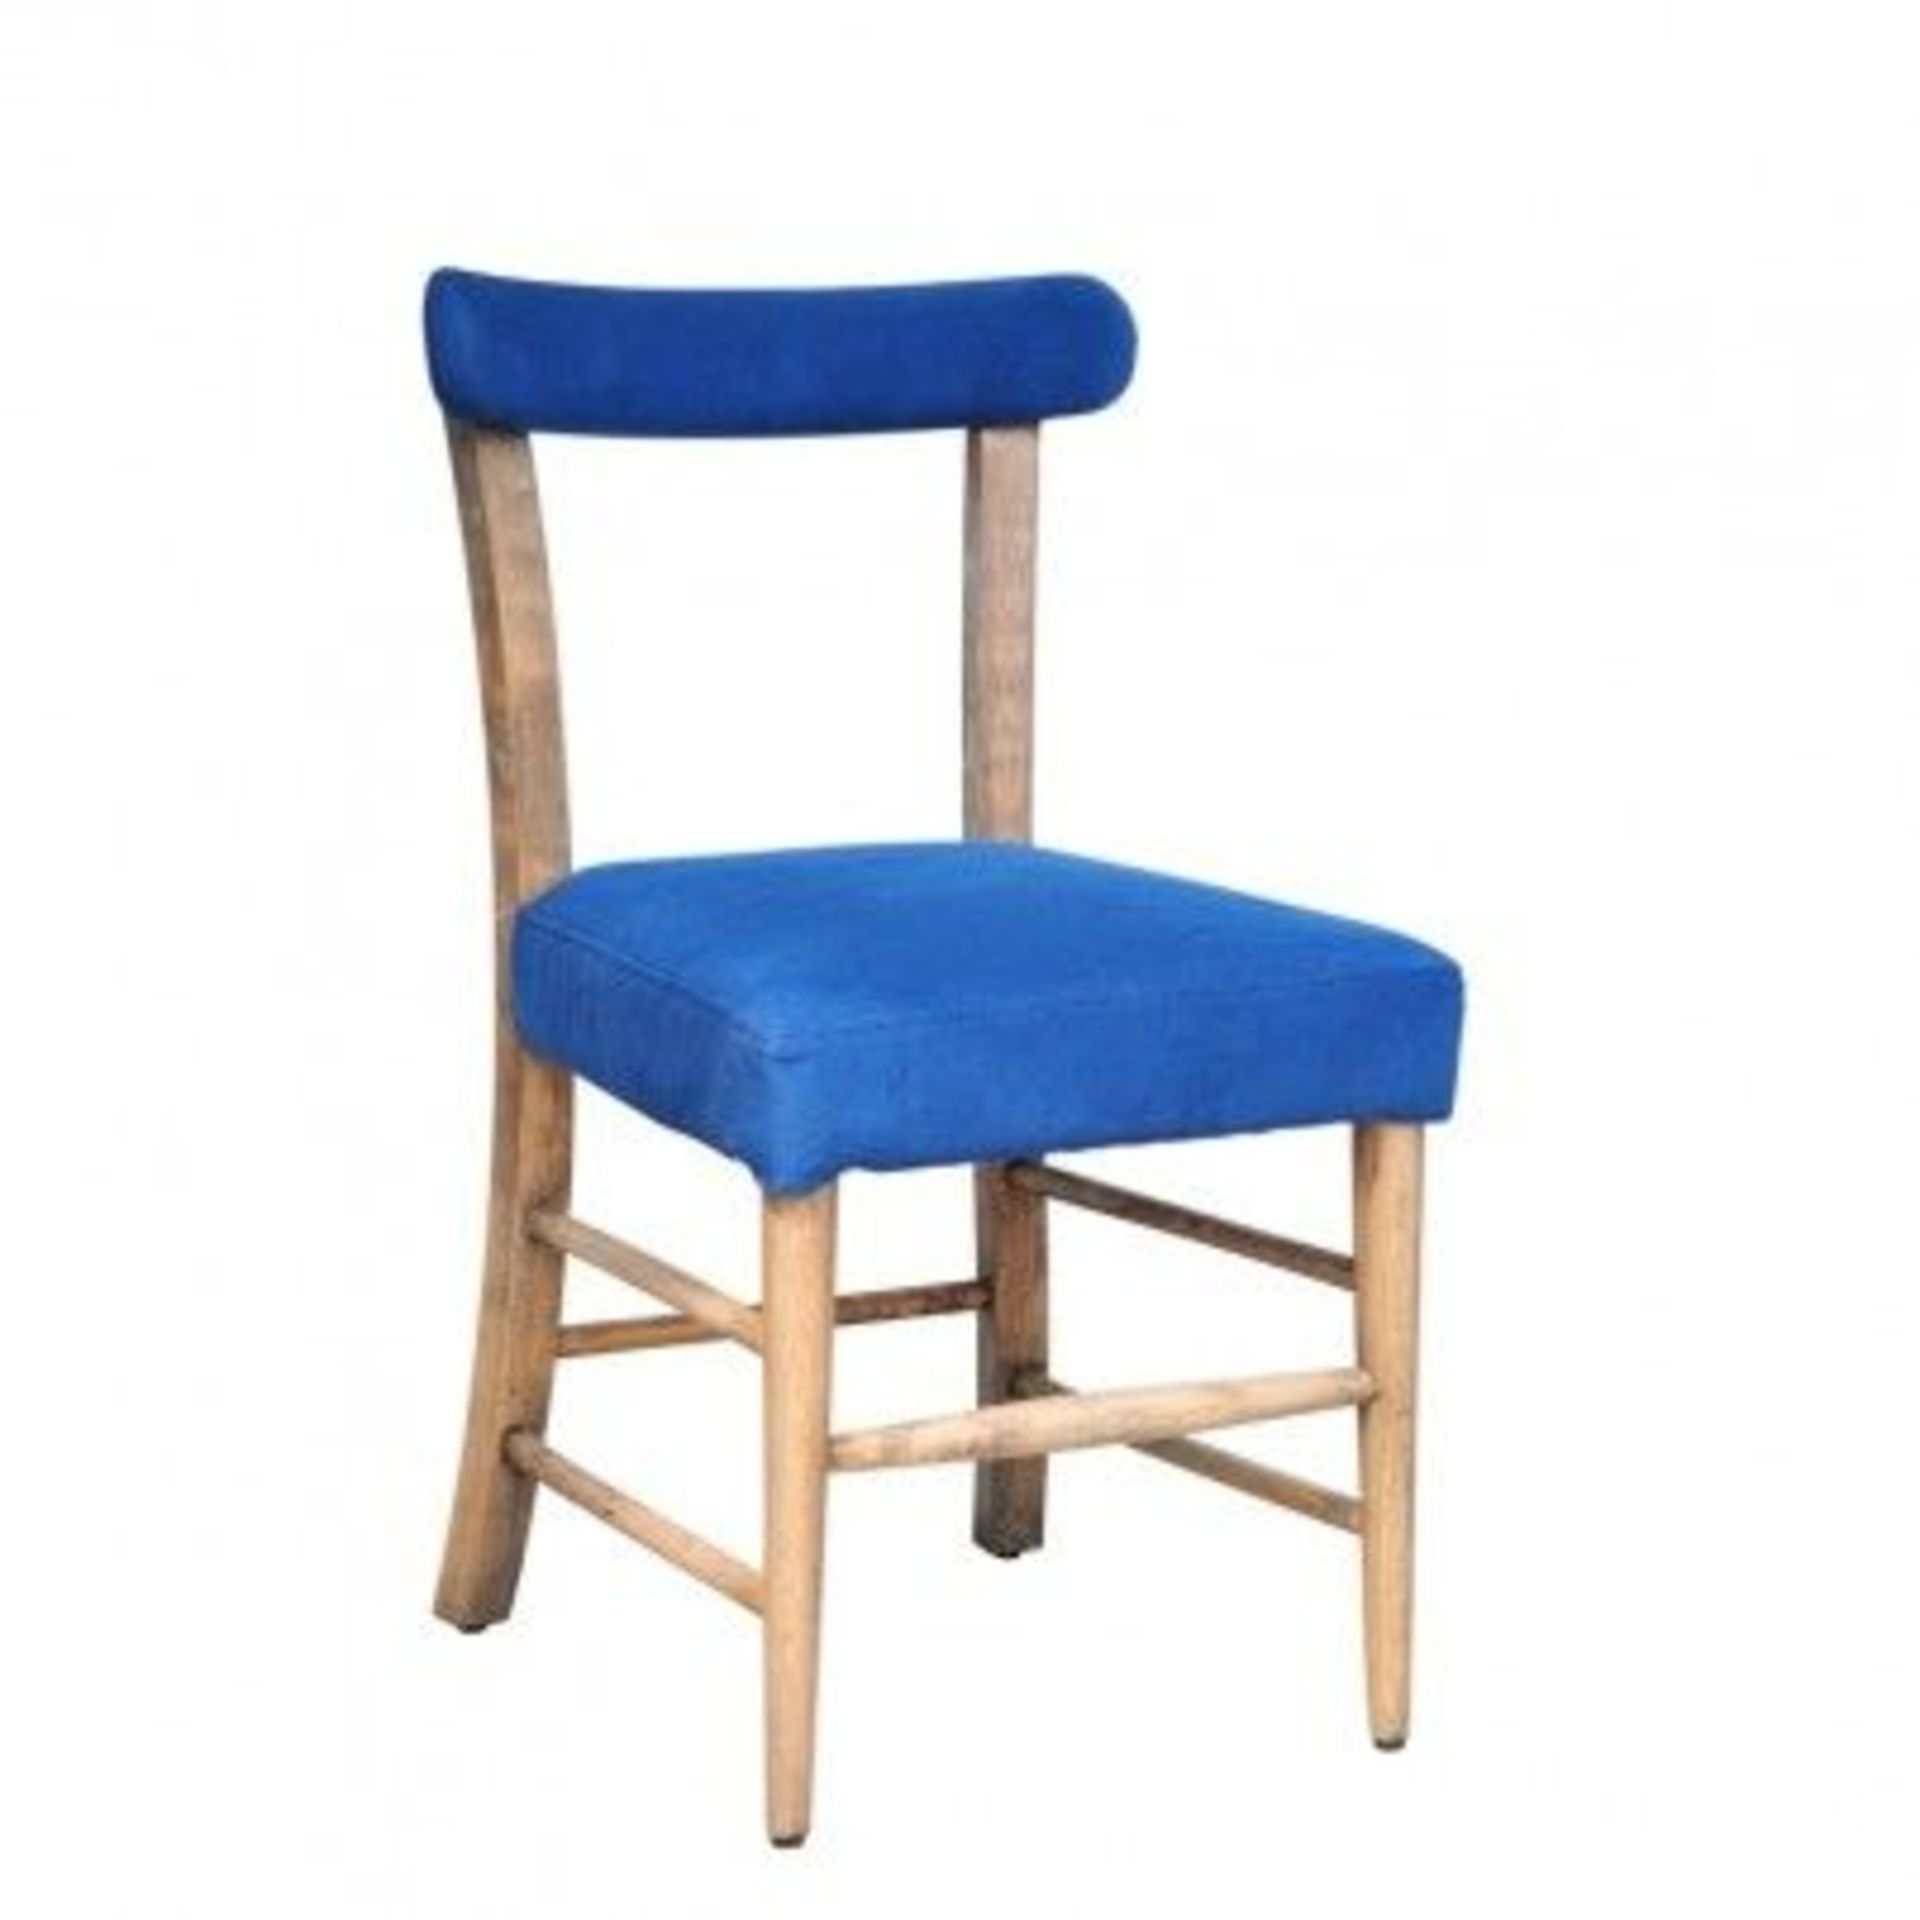 Lot 14 - Refectory Dining Chair Library Blue And Weathered Oak 51 X 57 X 87cm RRP £610